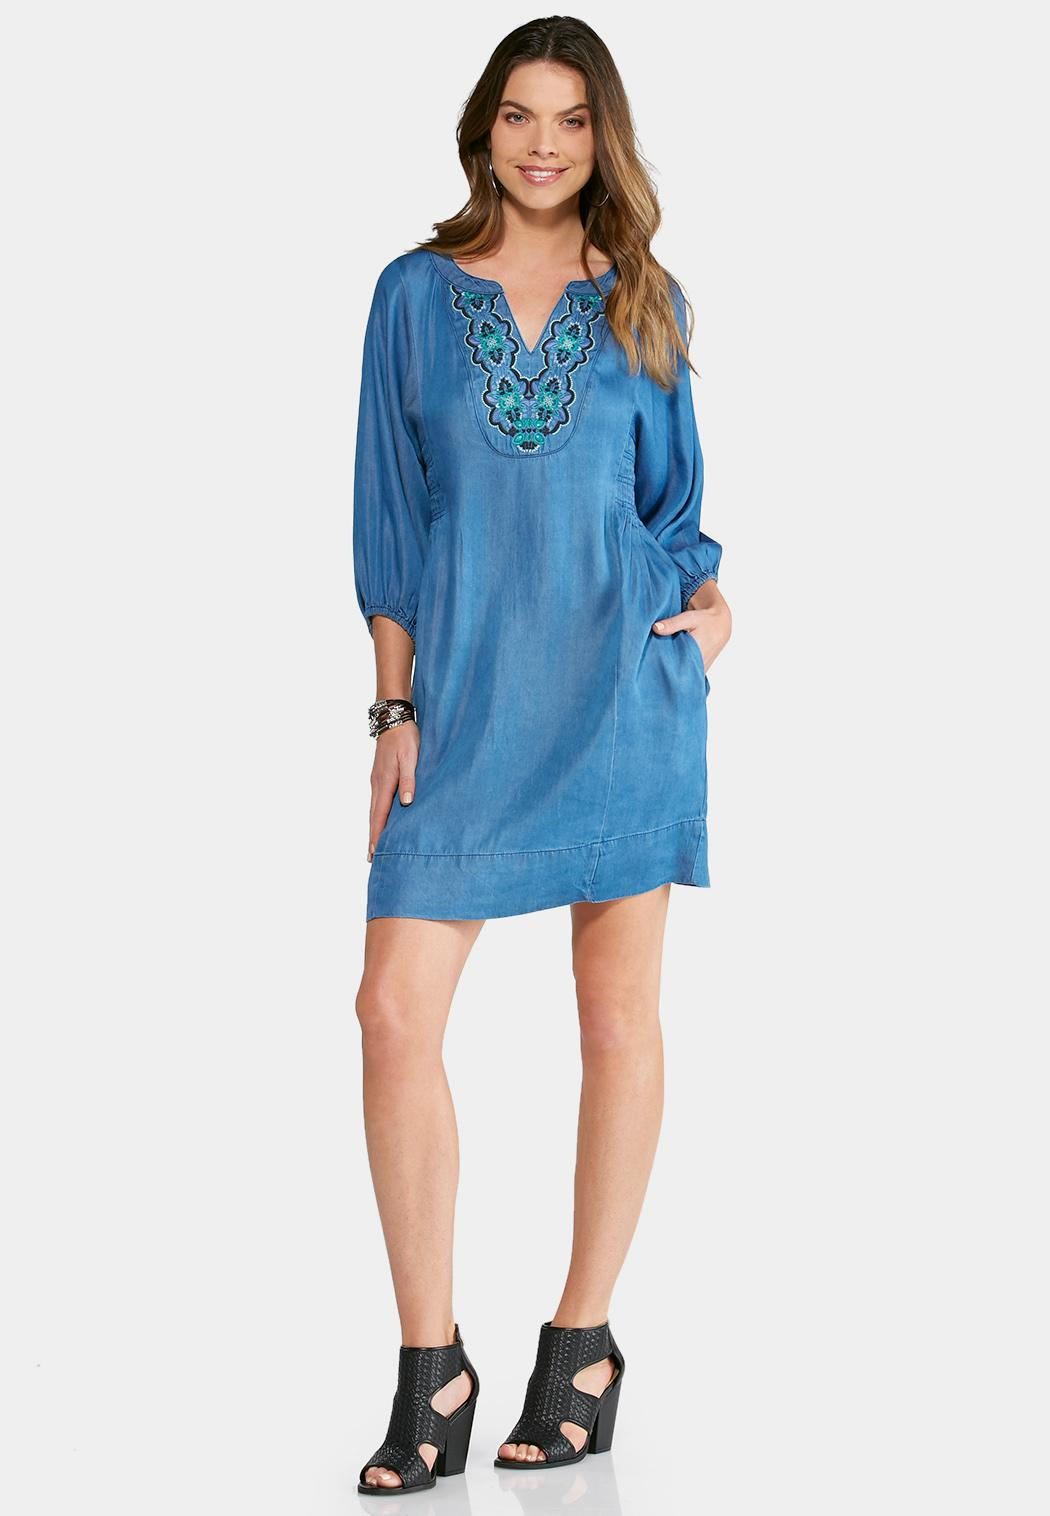 Plus Size Embroidered Chambray Dress Plus Sizes Cato Fashions